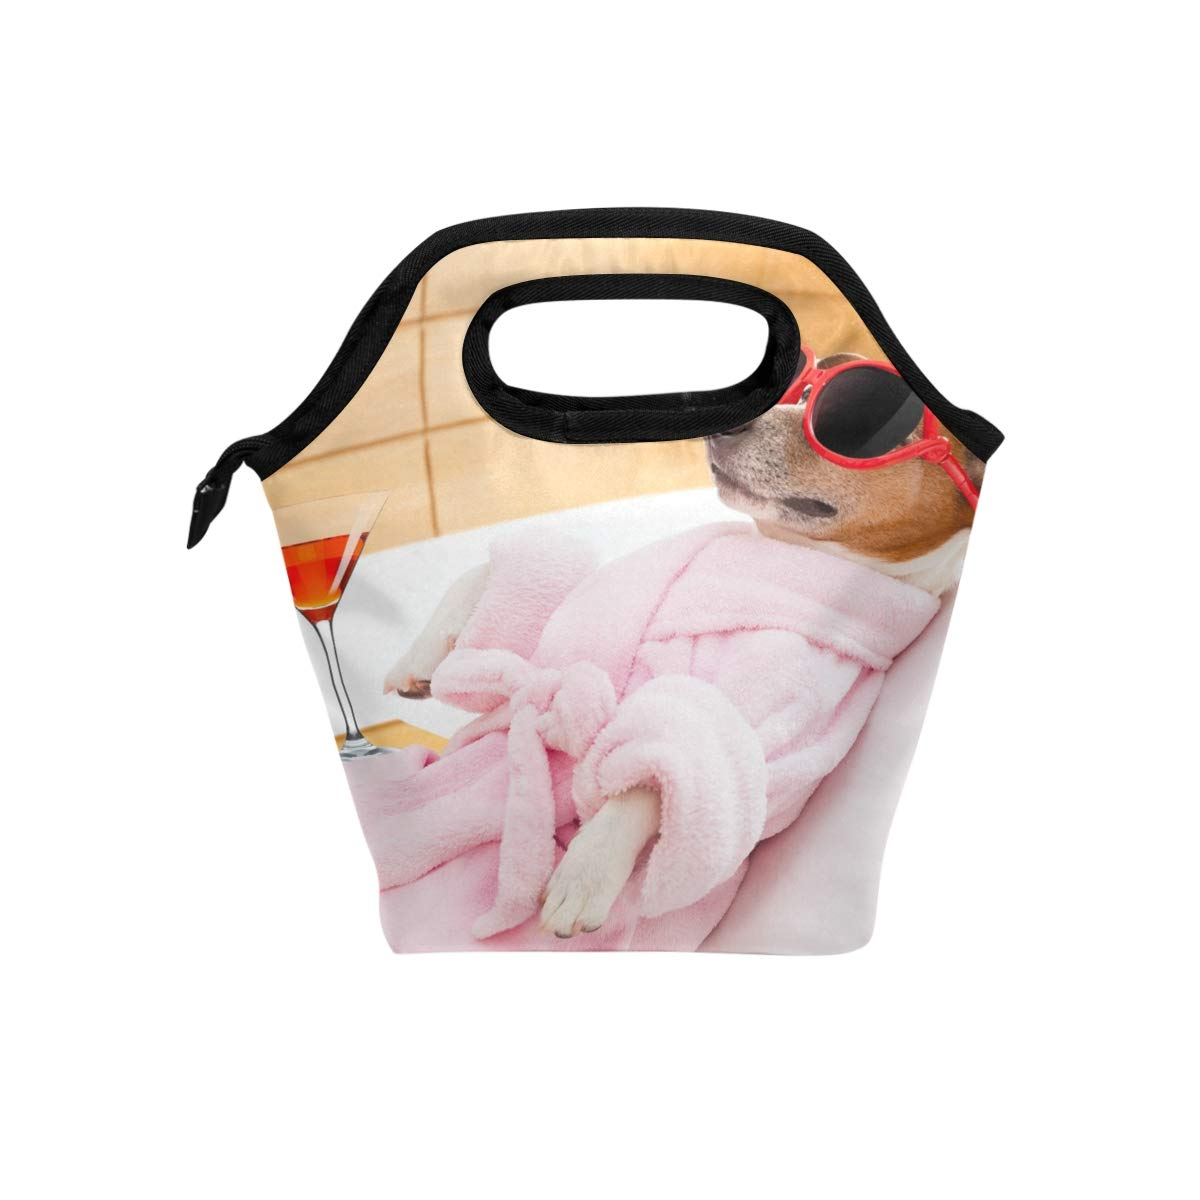 Durable Insulated Lunch Box Dog Spa Wellness Tote Reusable Cooler Bag Organizer Portable Reusable Lunch Tote